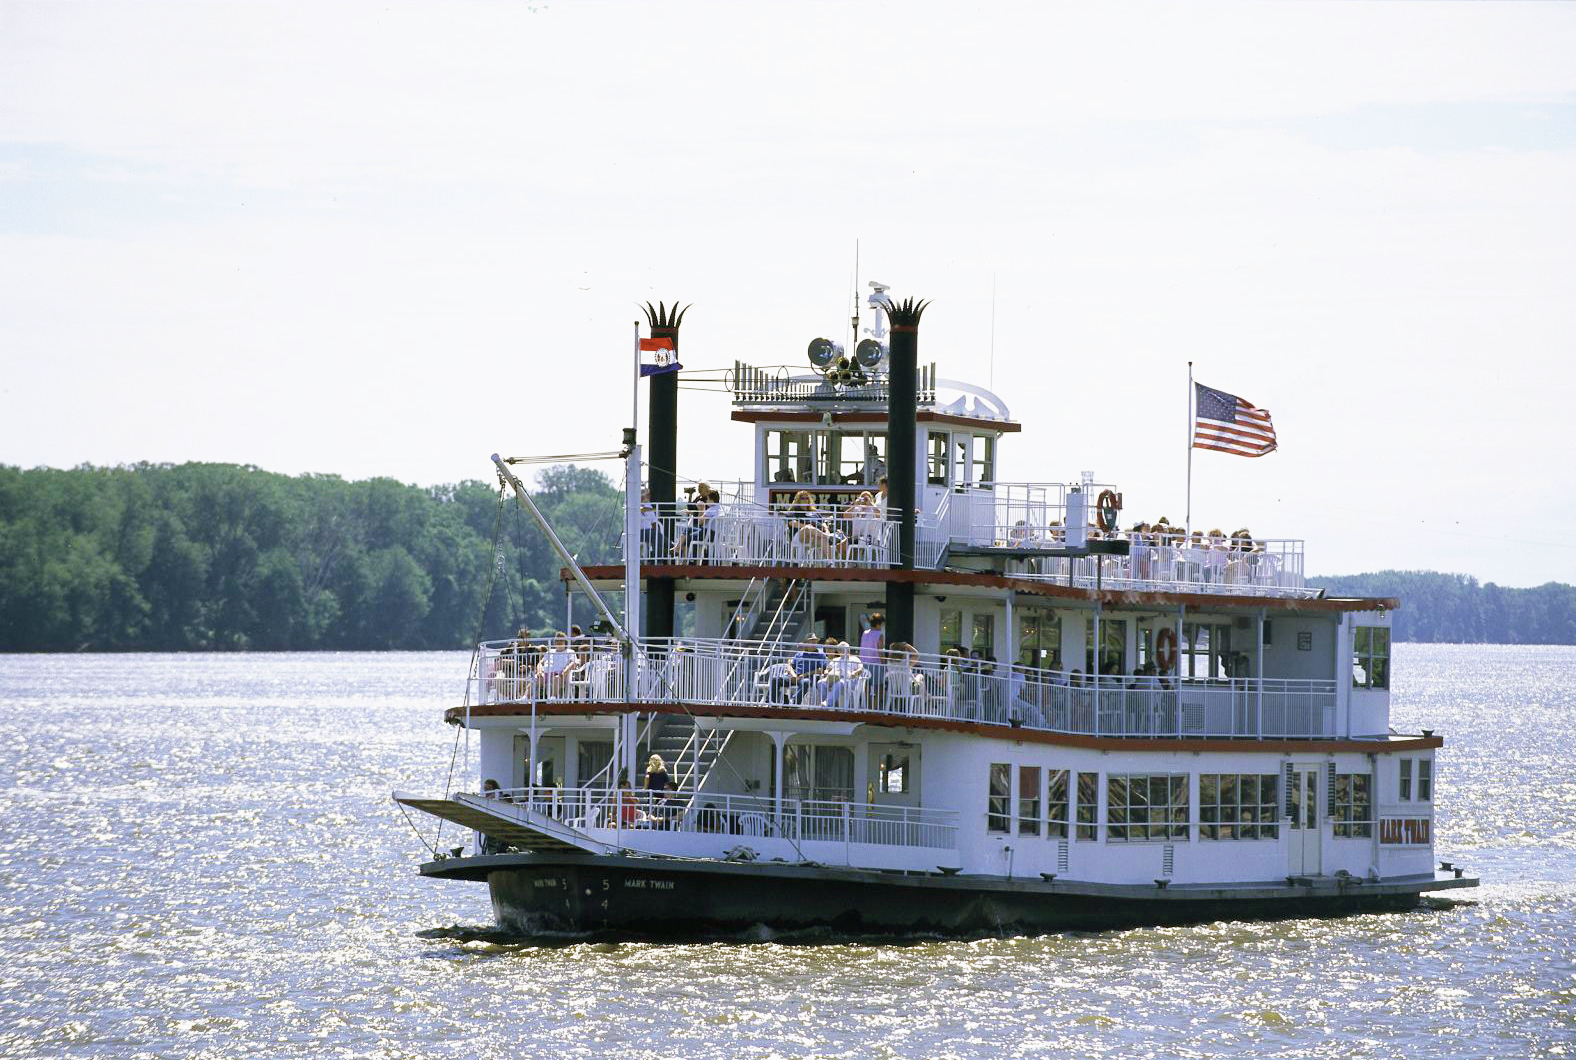 Old-fashioned riverboat